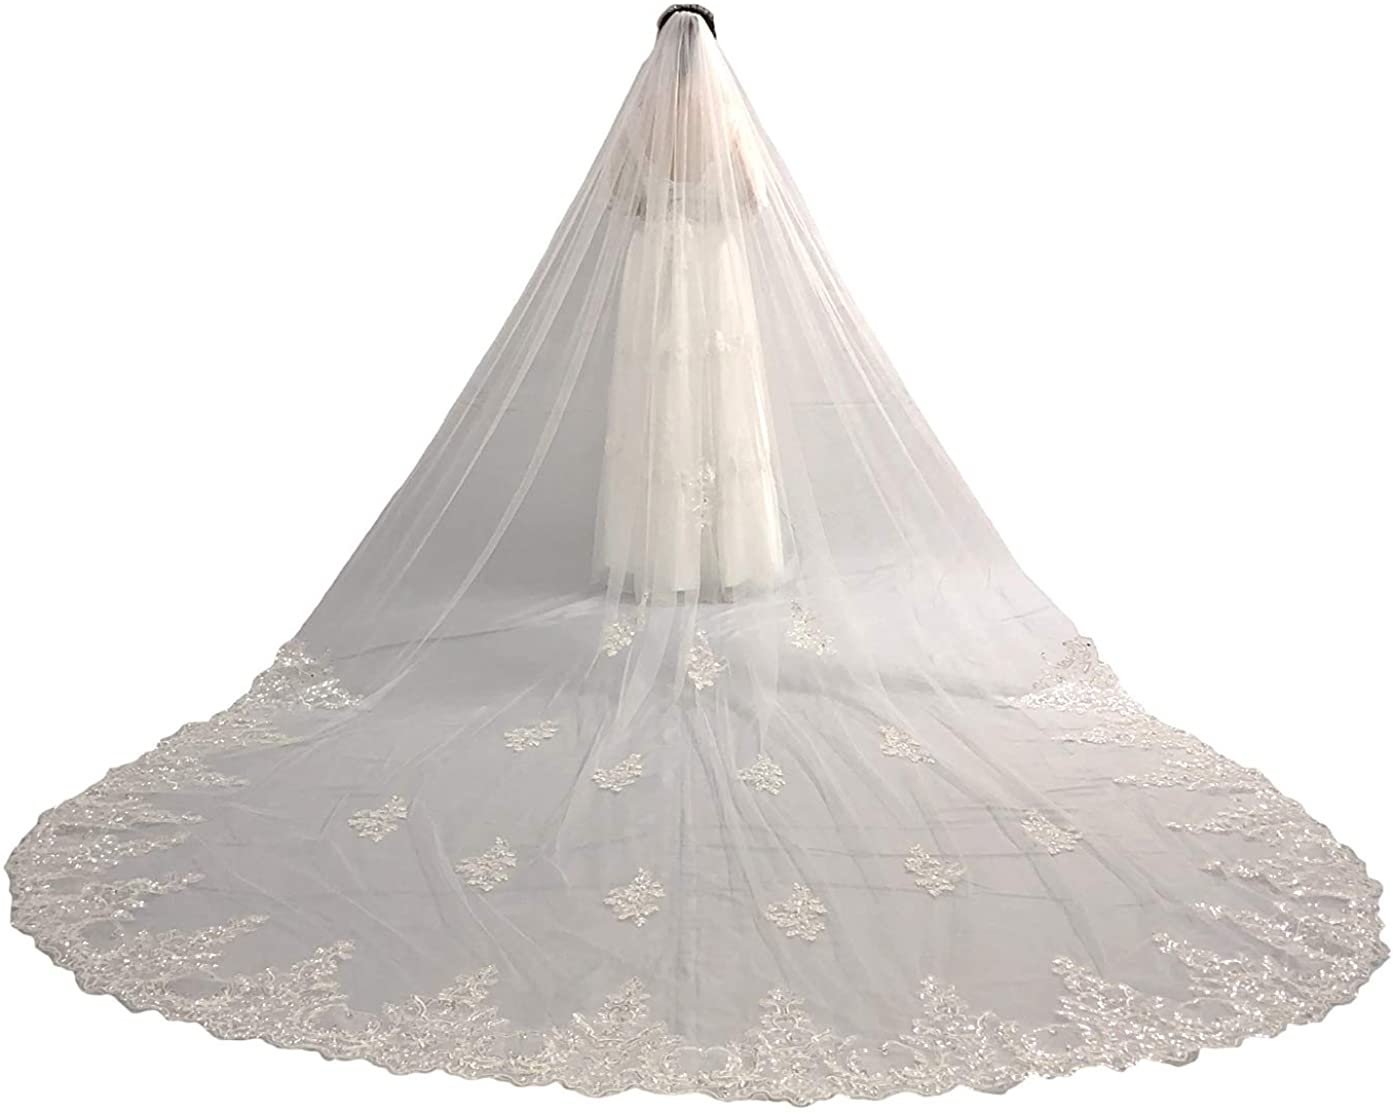 Faithclover Wedding Veils White Ivory 1 Tier Cathedral Beaded with Rhinestones Long with Comb